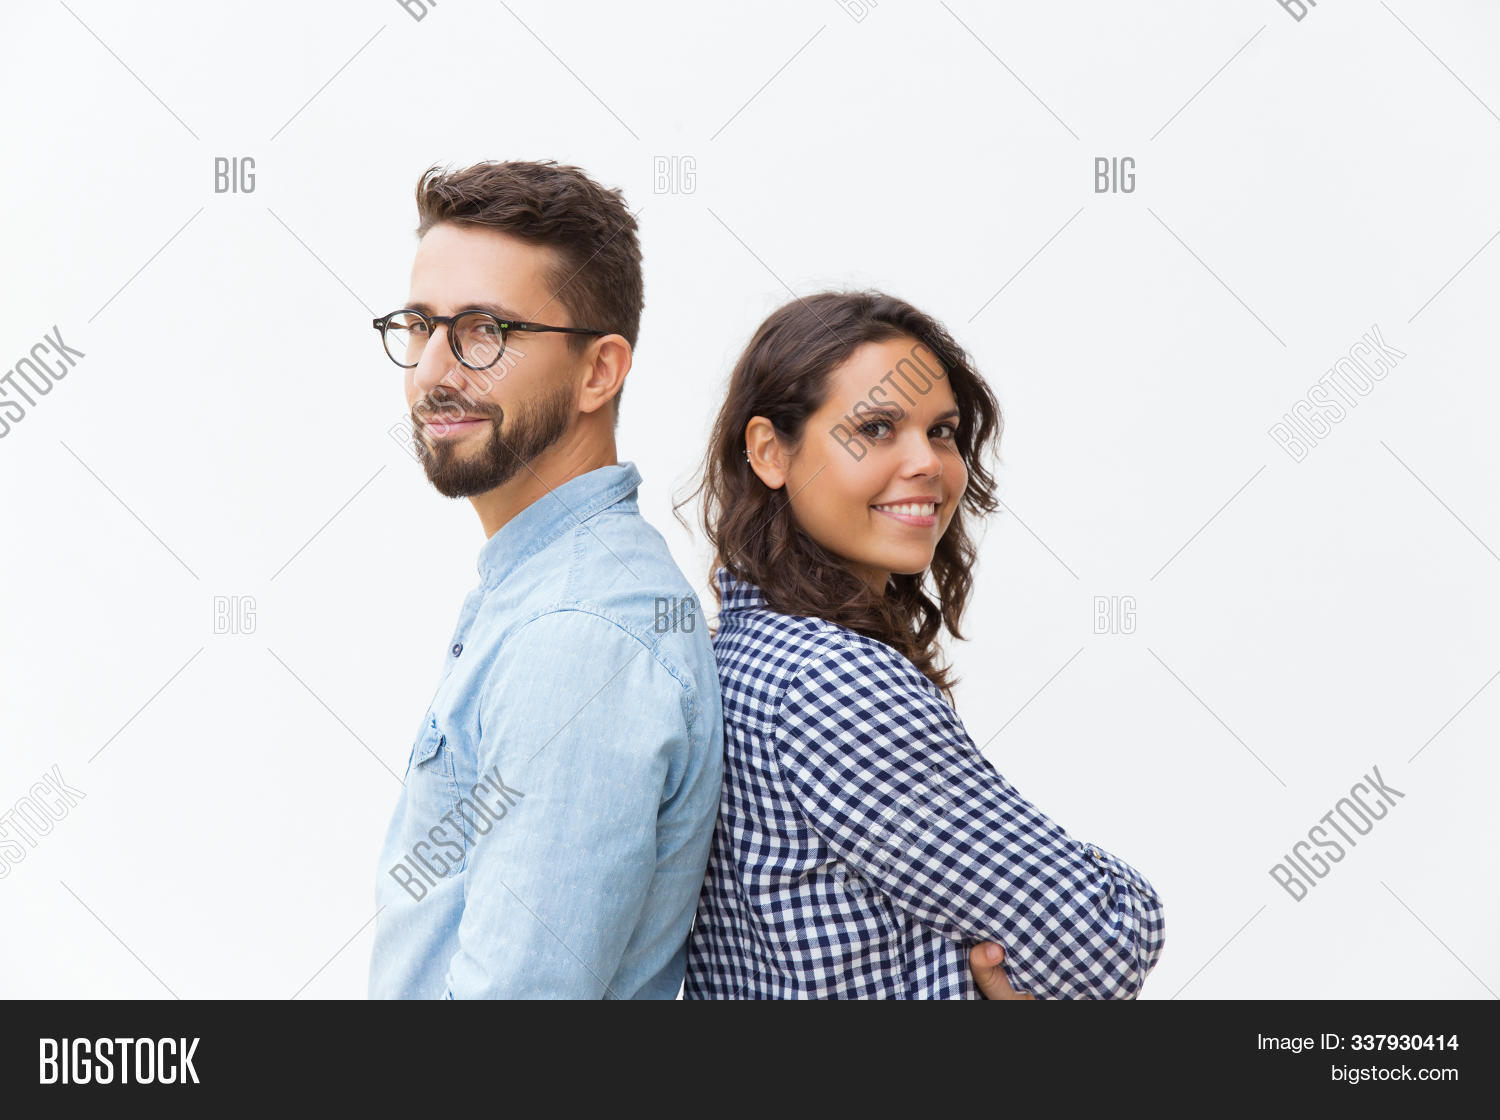 Caucasian,Latin,adult,arm,attractive,back,back-to-back,background,beautiful,camera,casual,cheerful,close,communication,concept,couple,crossed,female,folded,friend,friendship,glasses,guy,hand,handsome,happy,isolated,leaning,looking,male,man,model,people,portrait,posing,positive,relationship,side,smiling,standing,student,studio,support,together,two,view,white,woman,young